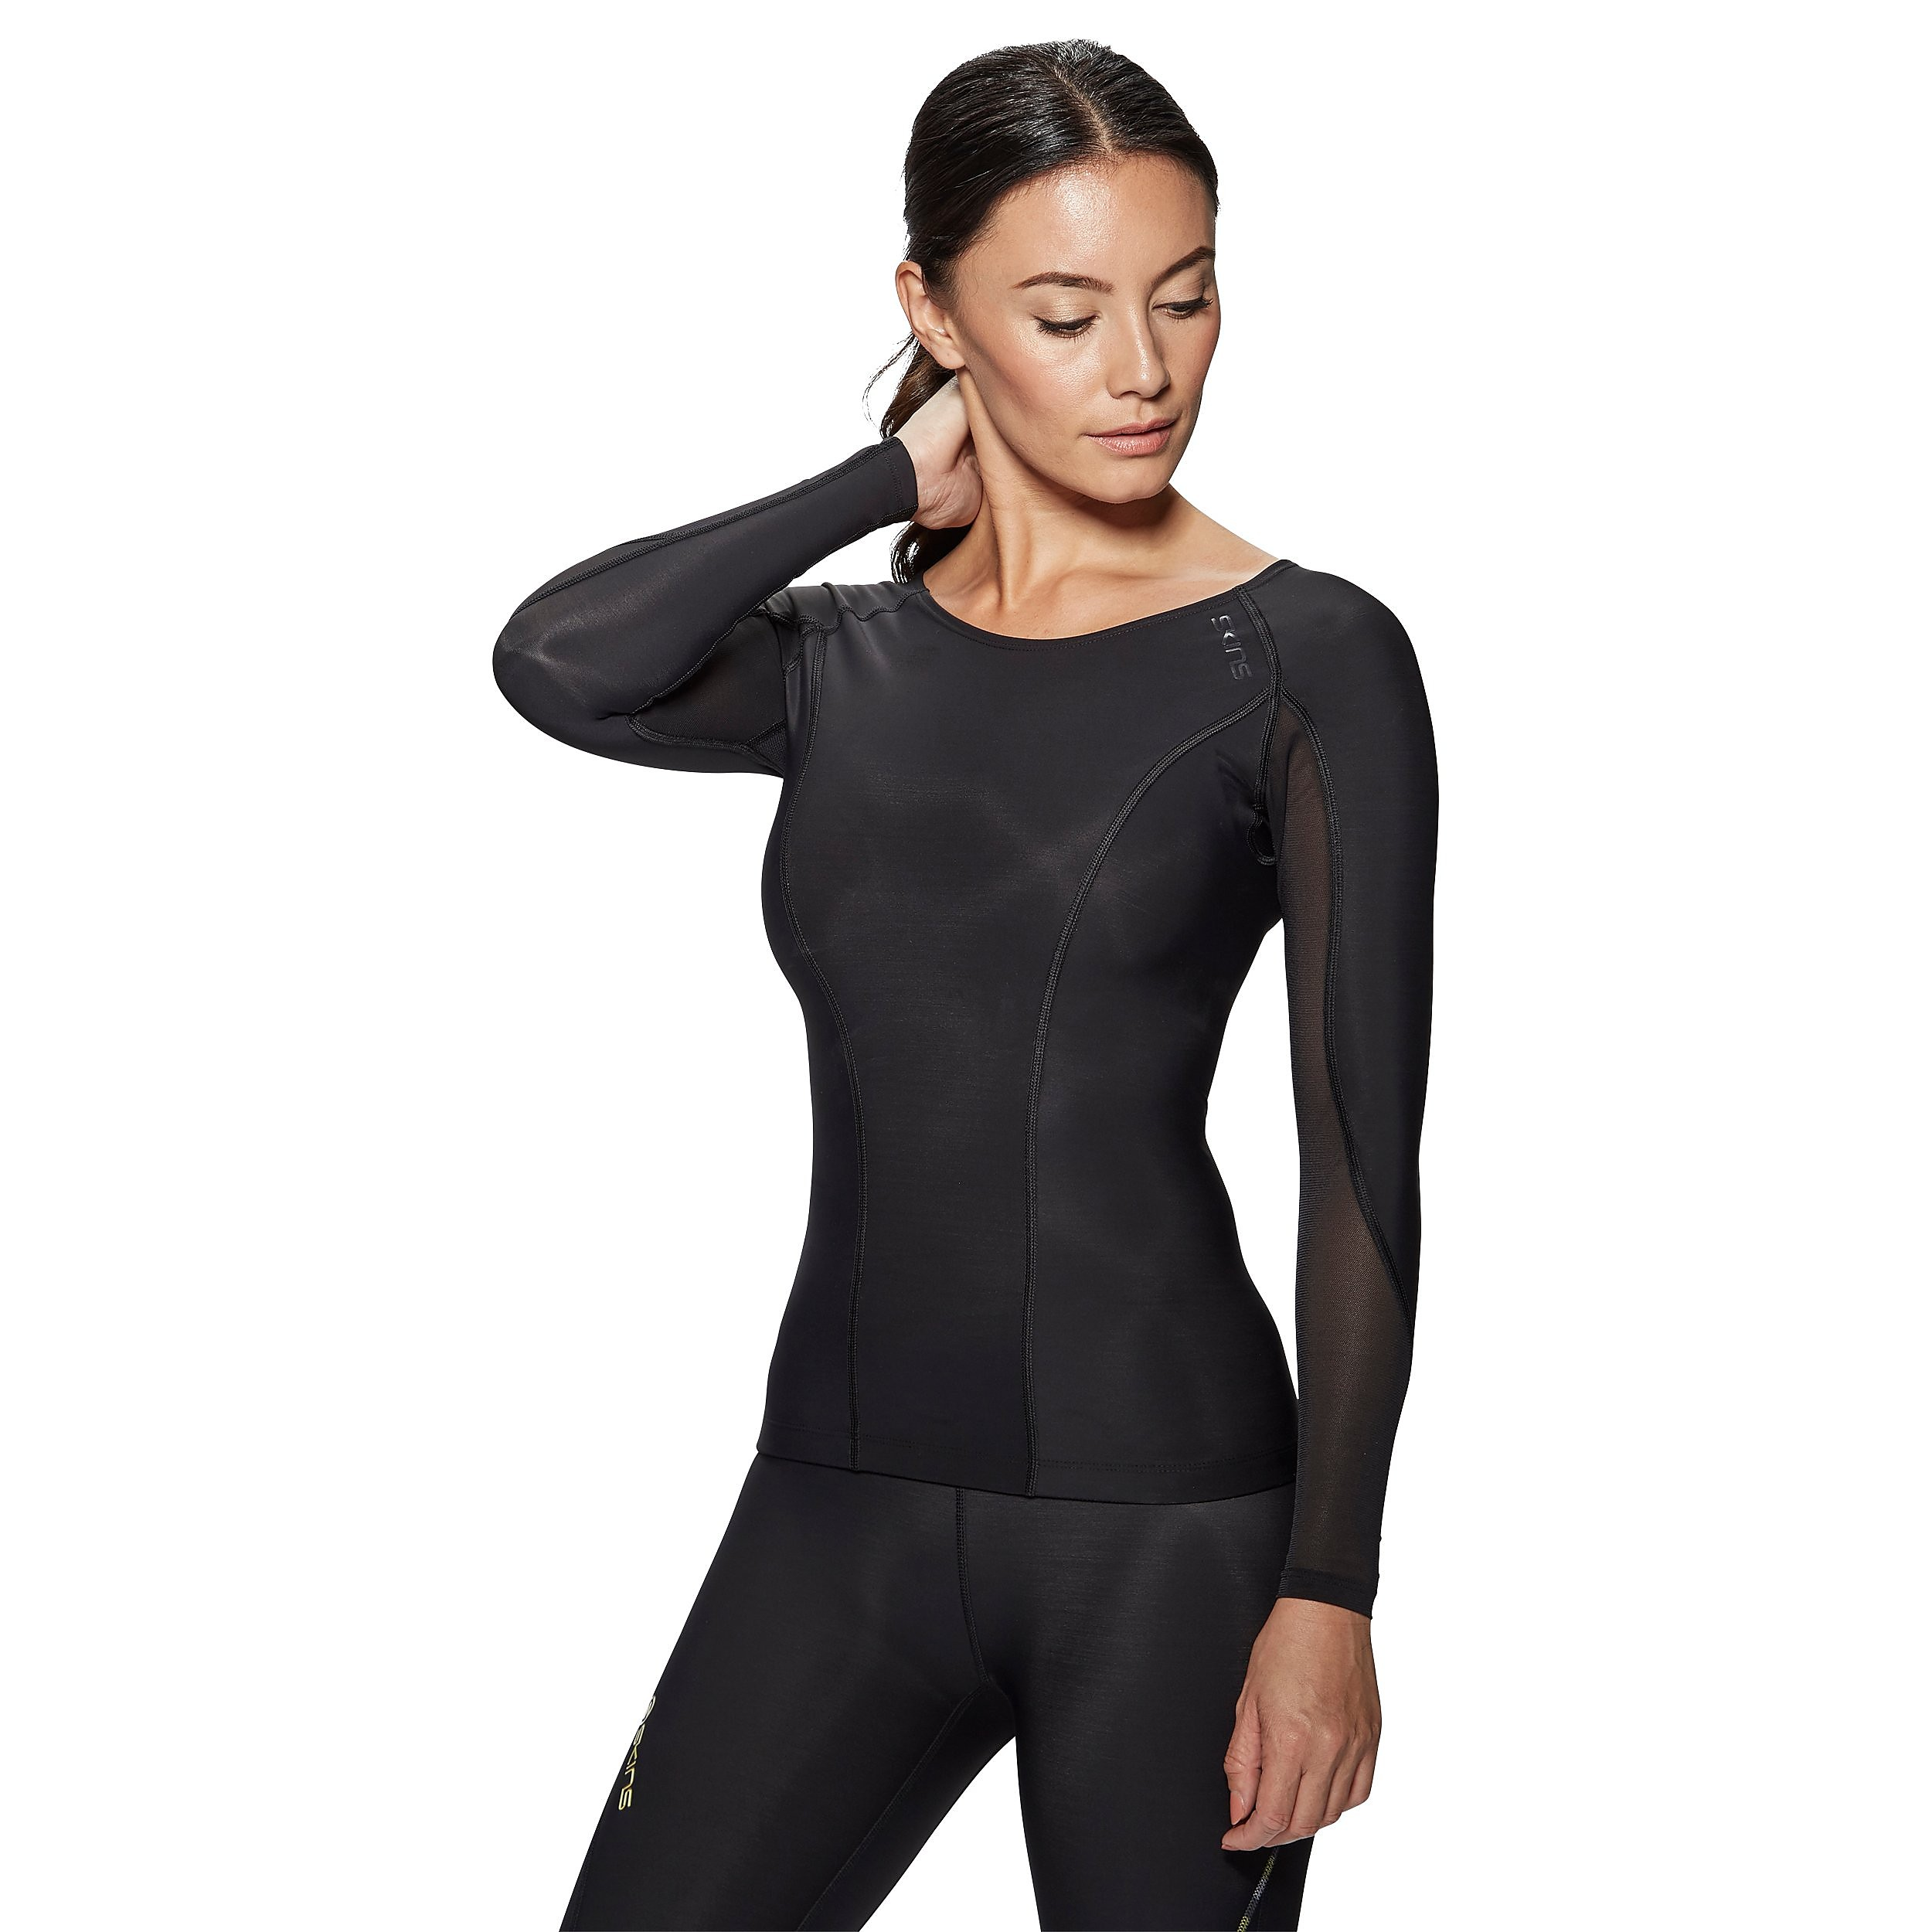 Skins Women's DNAmic Long Sleeve Top